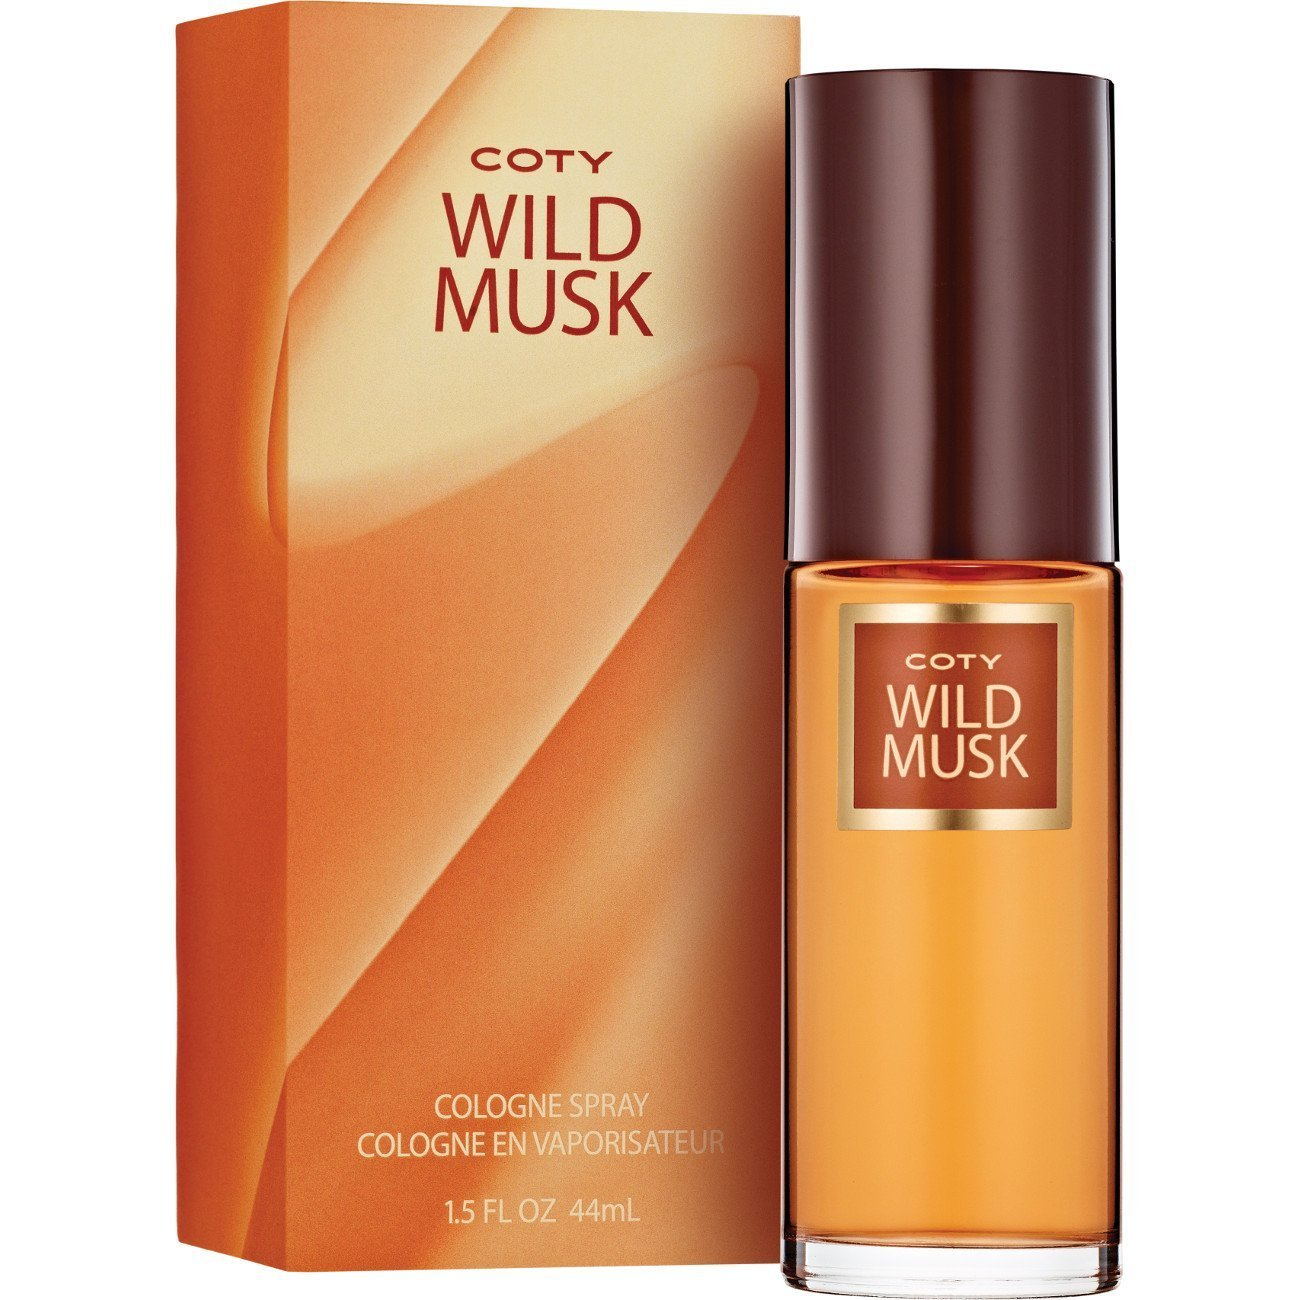 Coty Wild Musk Cologne Spray 1.5 Ounce Women's Fragrance in a Musky Floral Scent Great Gift for Cologne or Perfume Lovers WIL12